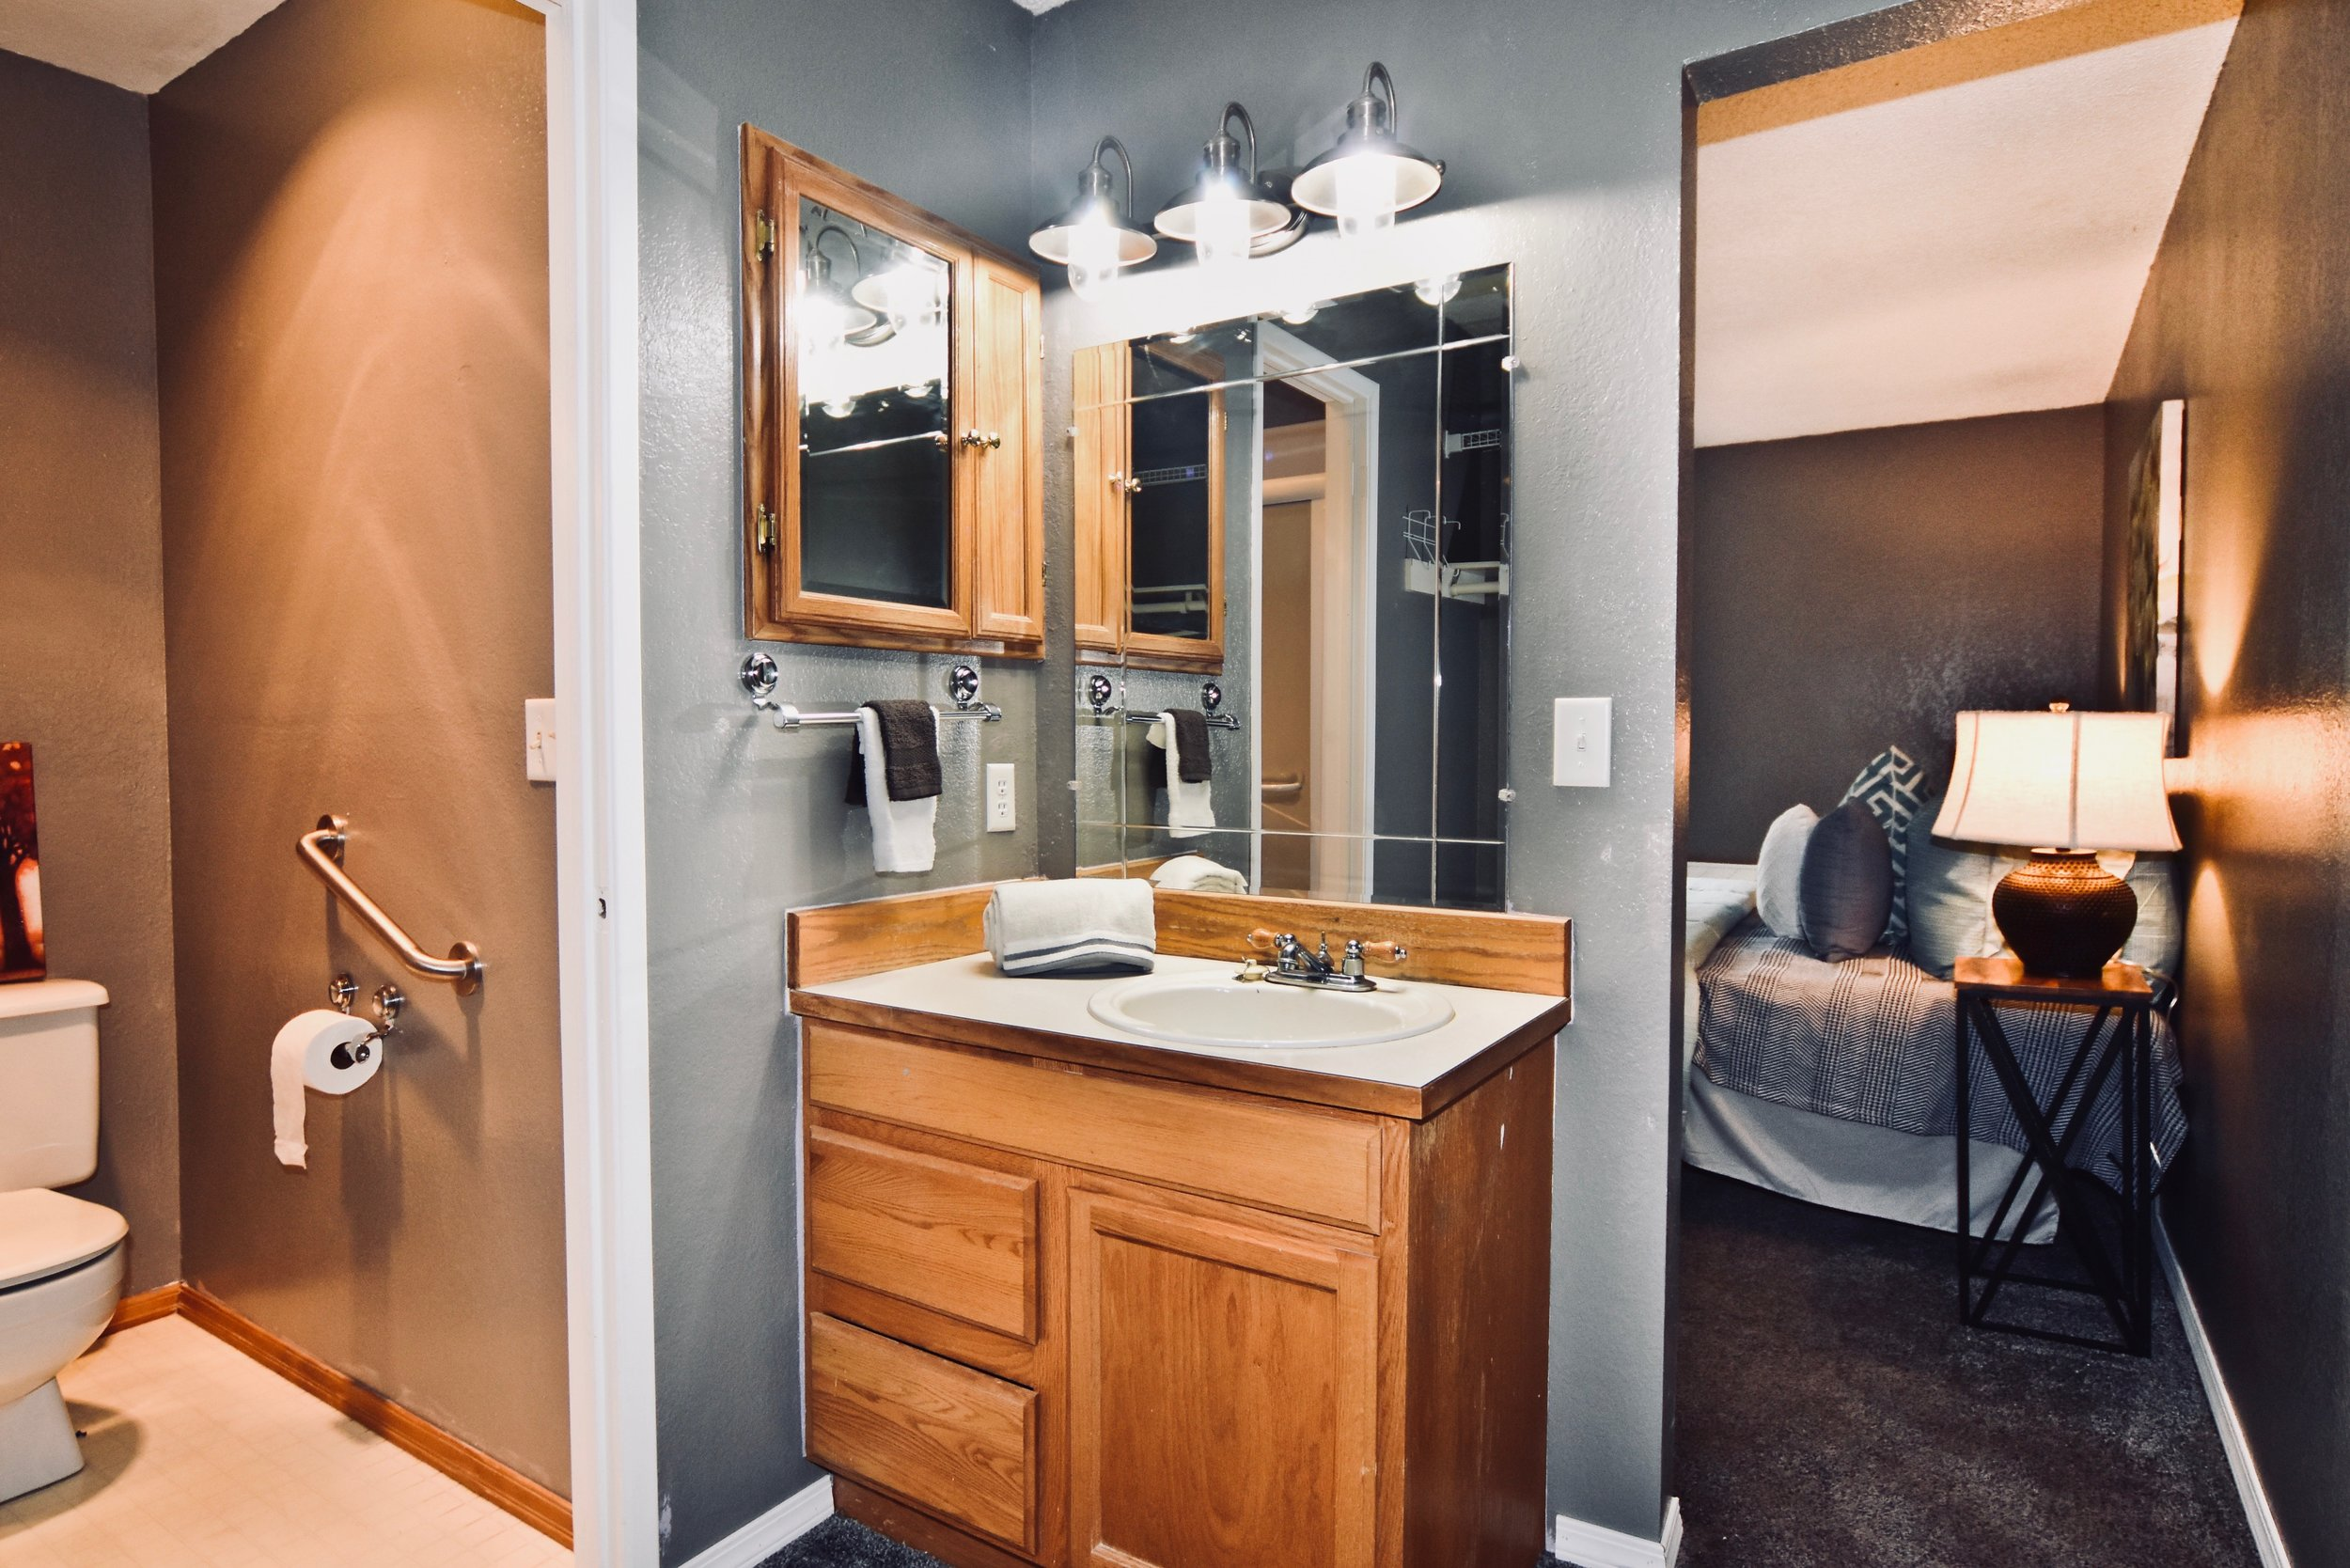 Ensuite bathroom vanity + additional closet space behind leading to shower area.